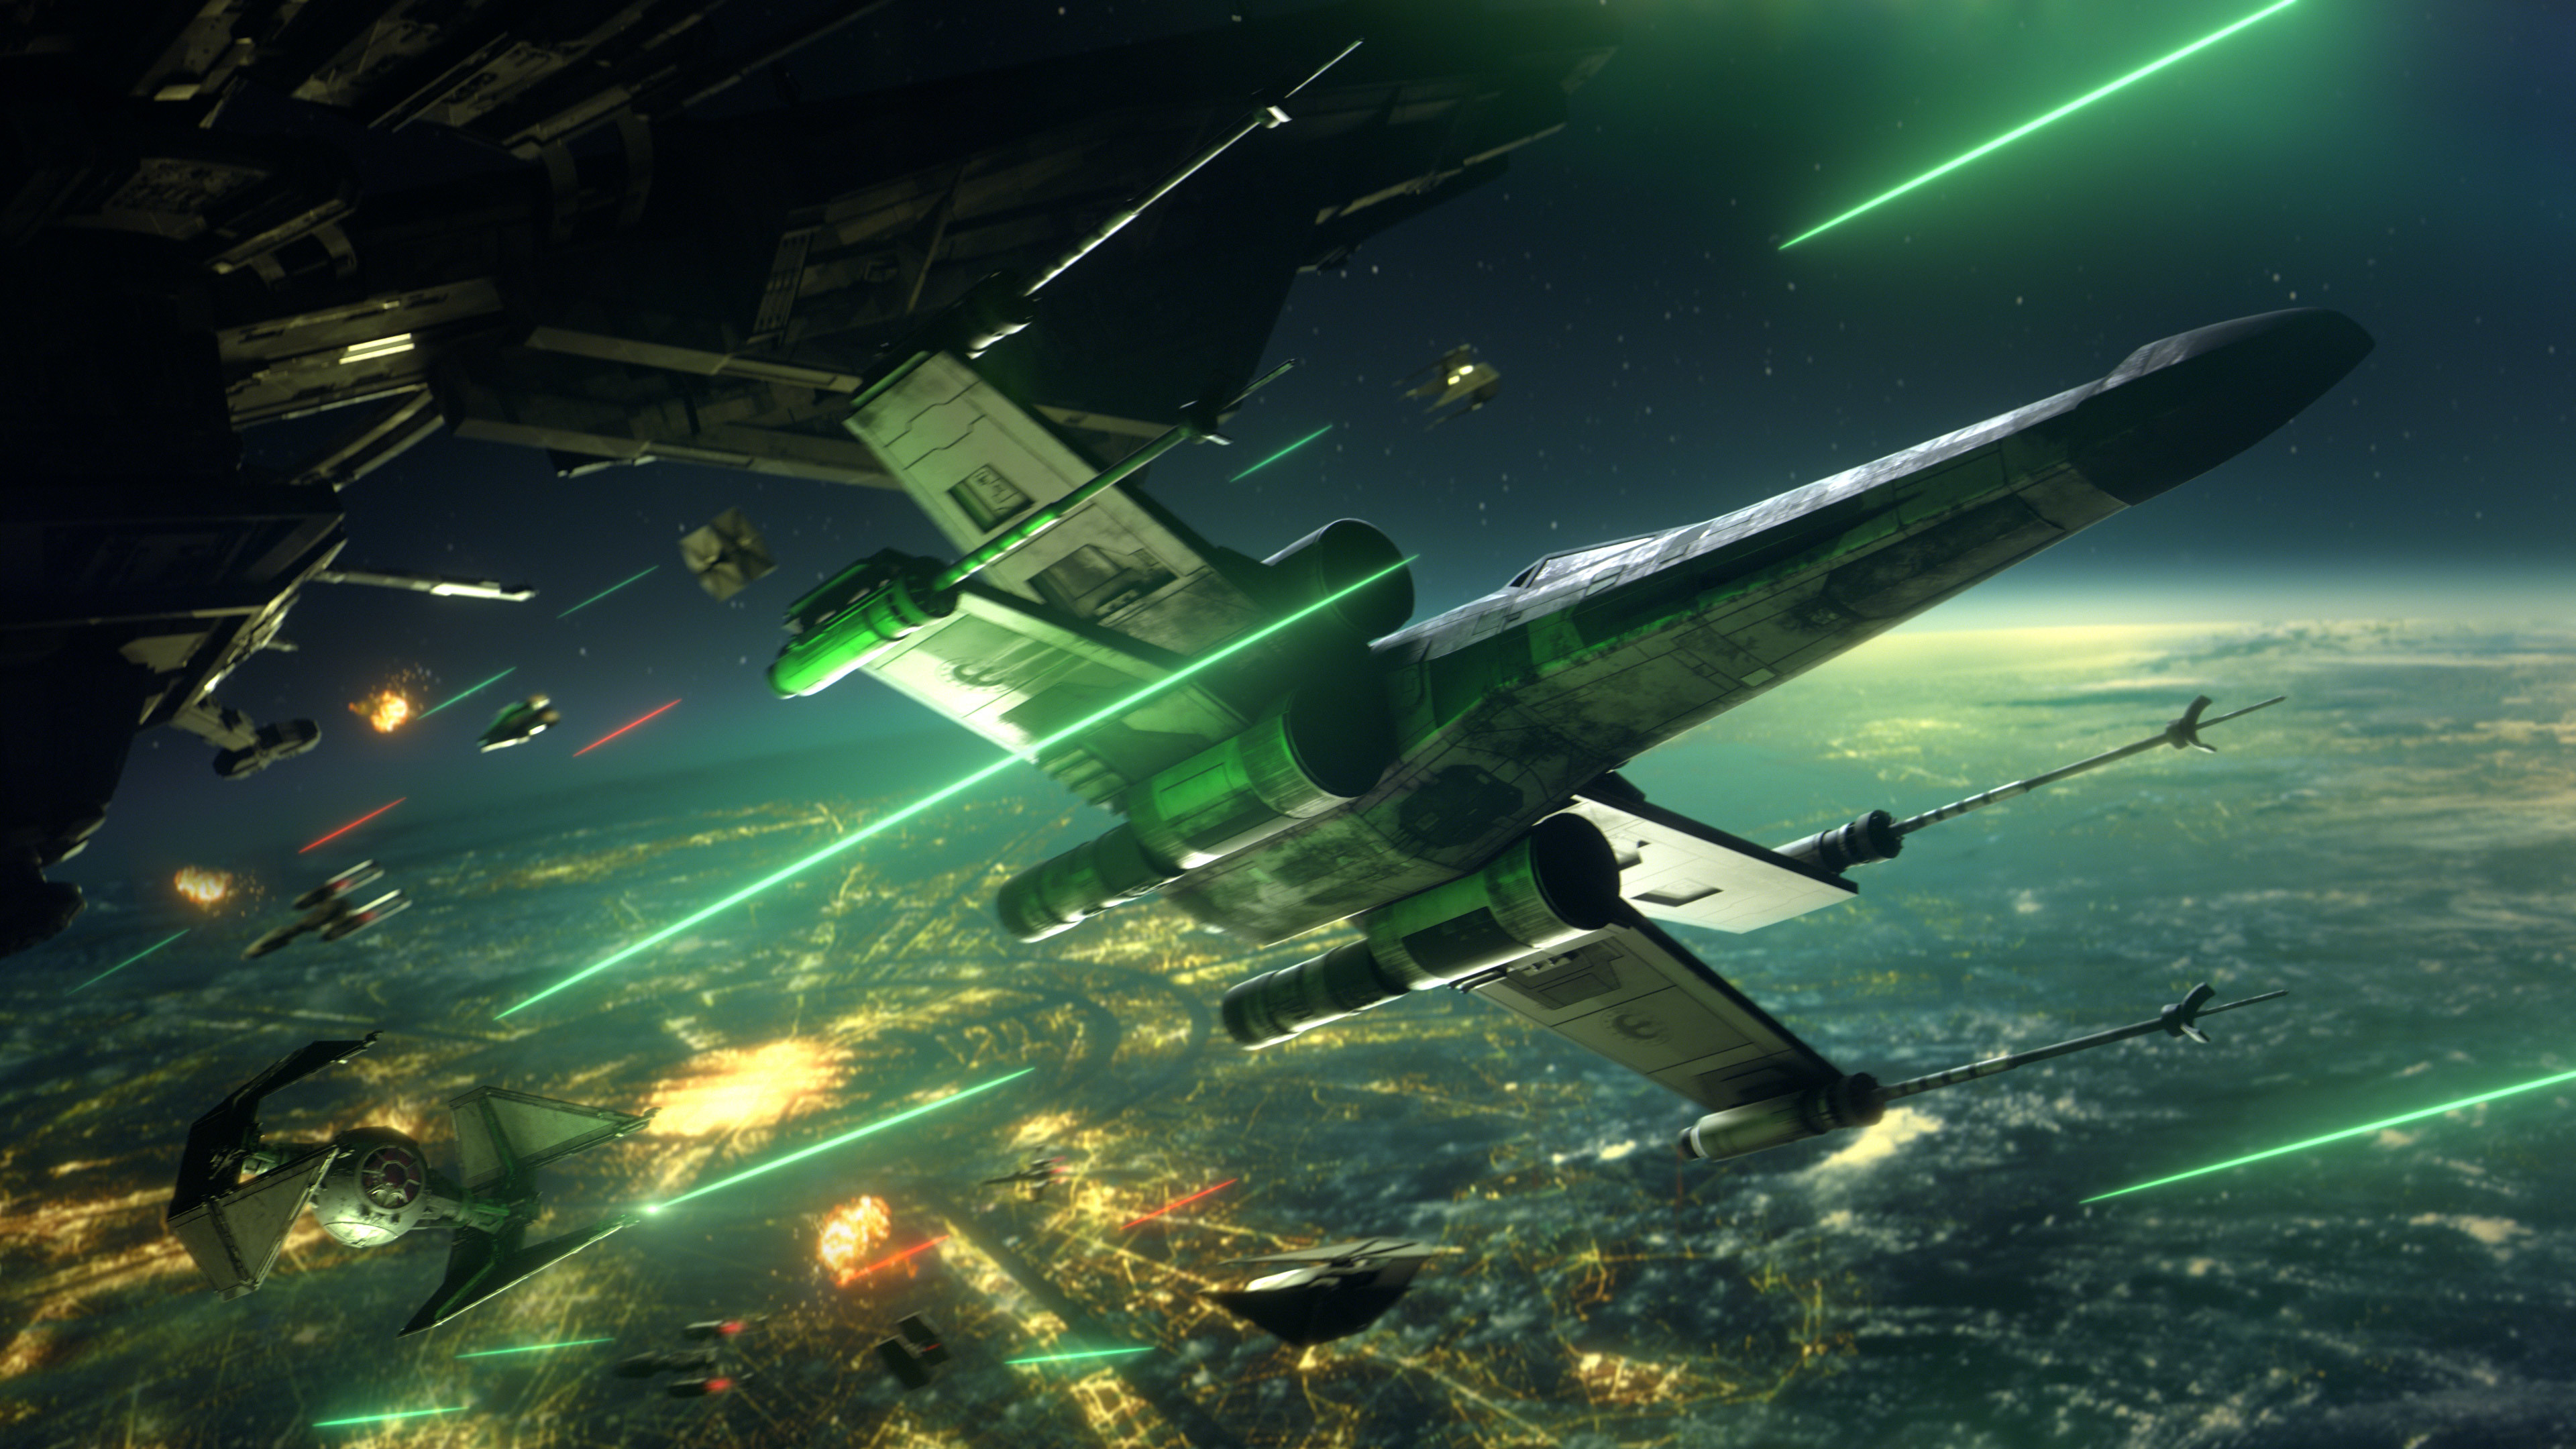 Star Wars Squadrons Space War Wallpaper Hd Games 4k Wallpapers Images Photos And Background